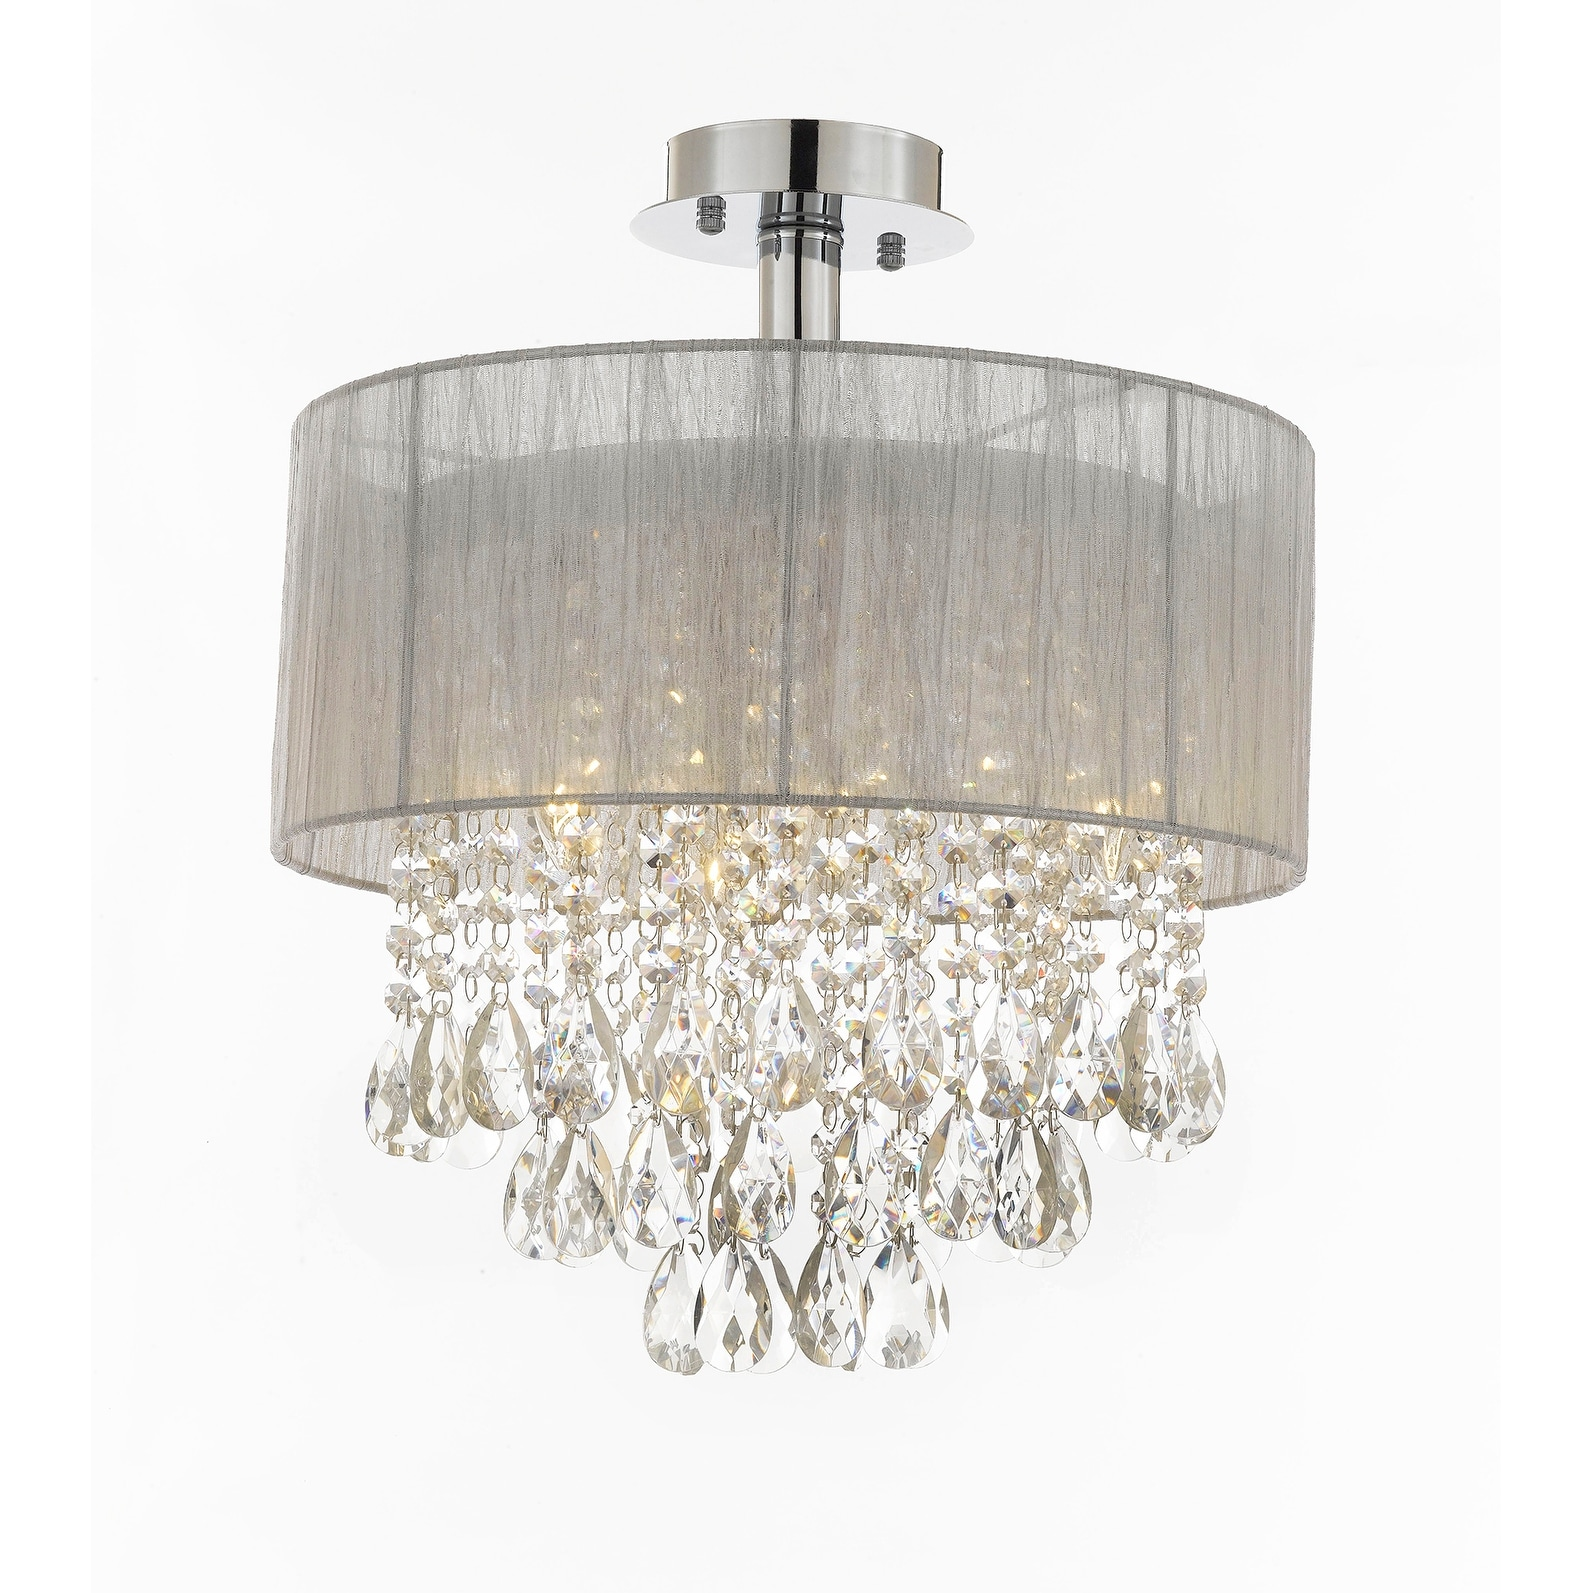 of organza stores picture round champagne finish chandelier crystal brizzo brass crystals and cr shade contemporary pendant lights antique lighting